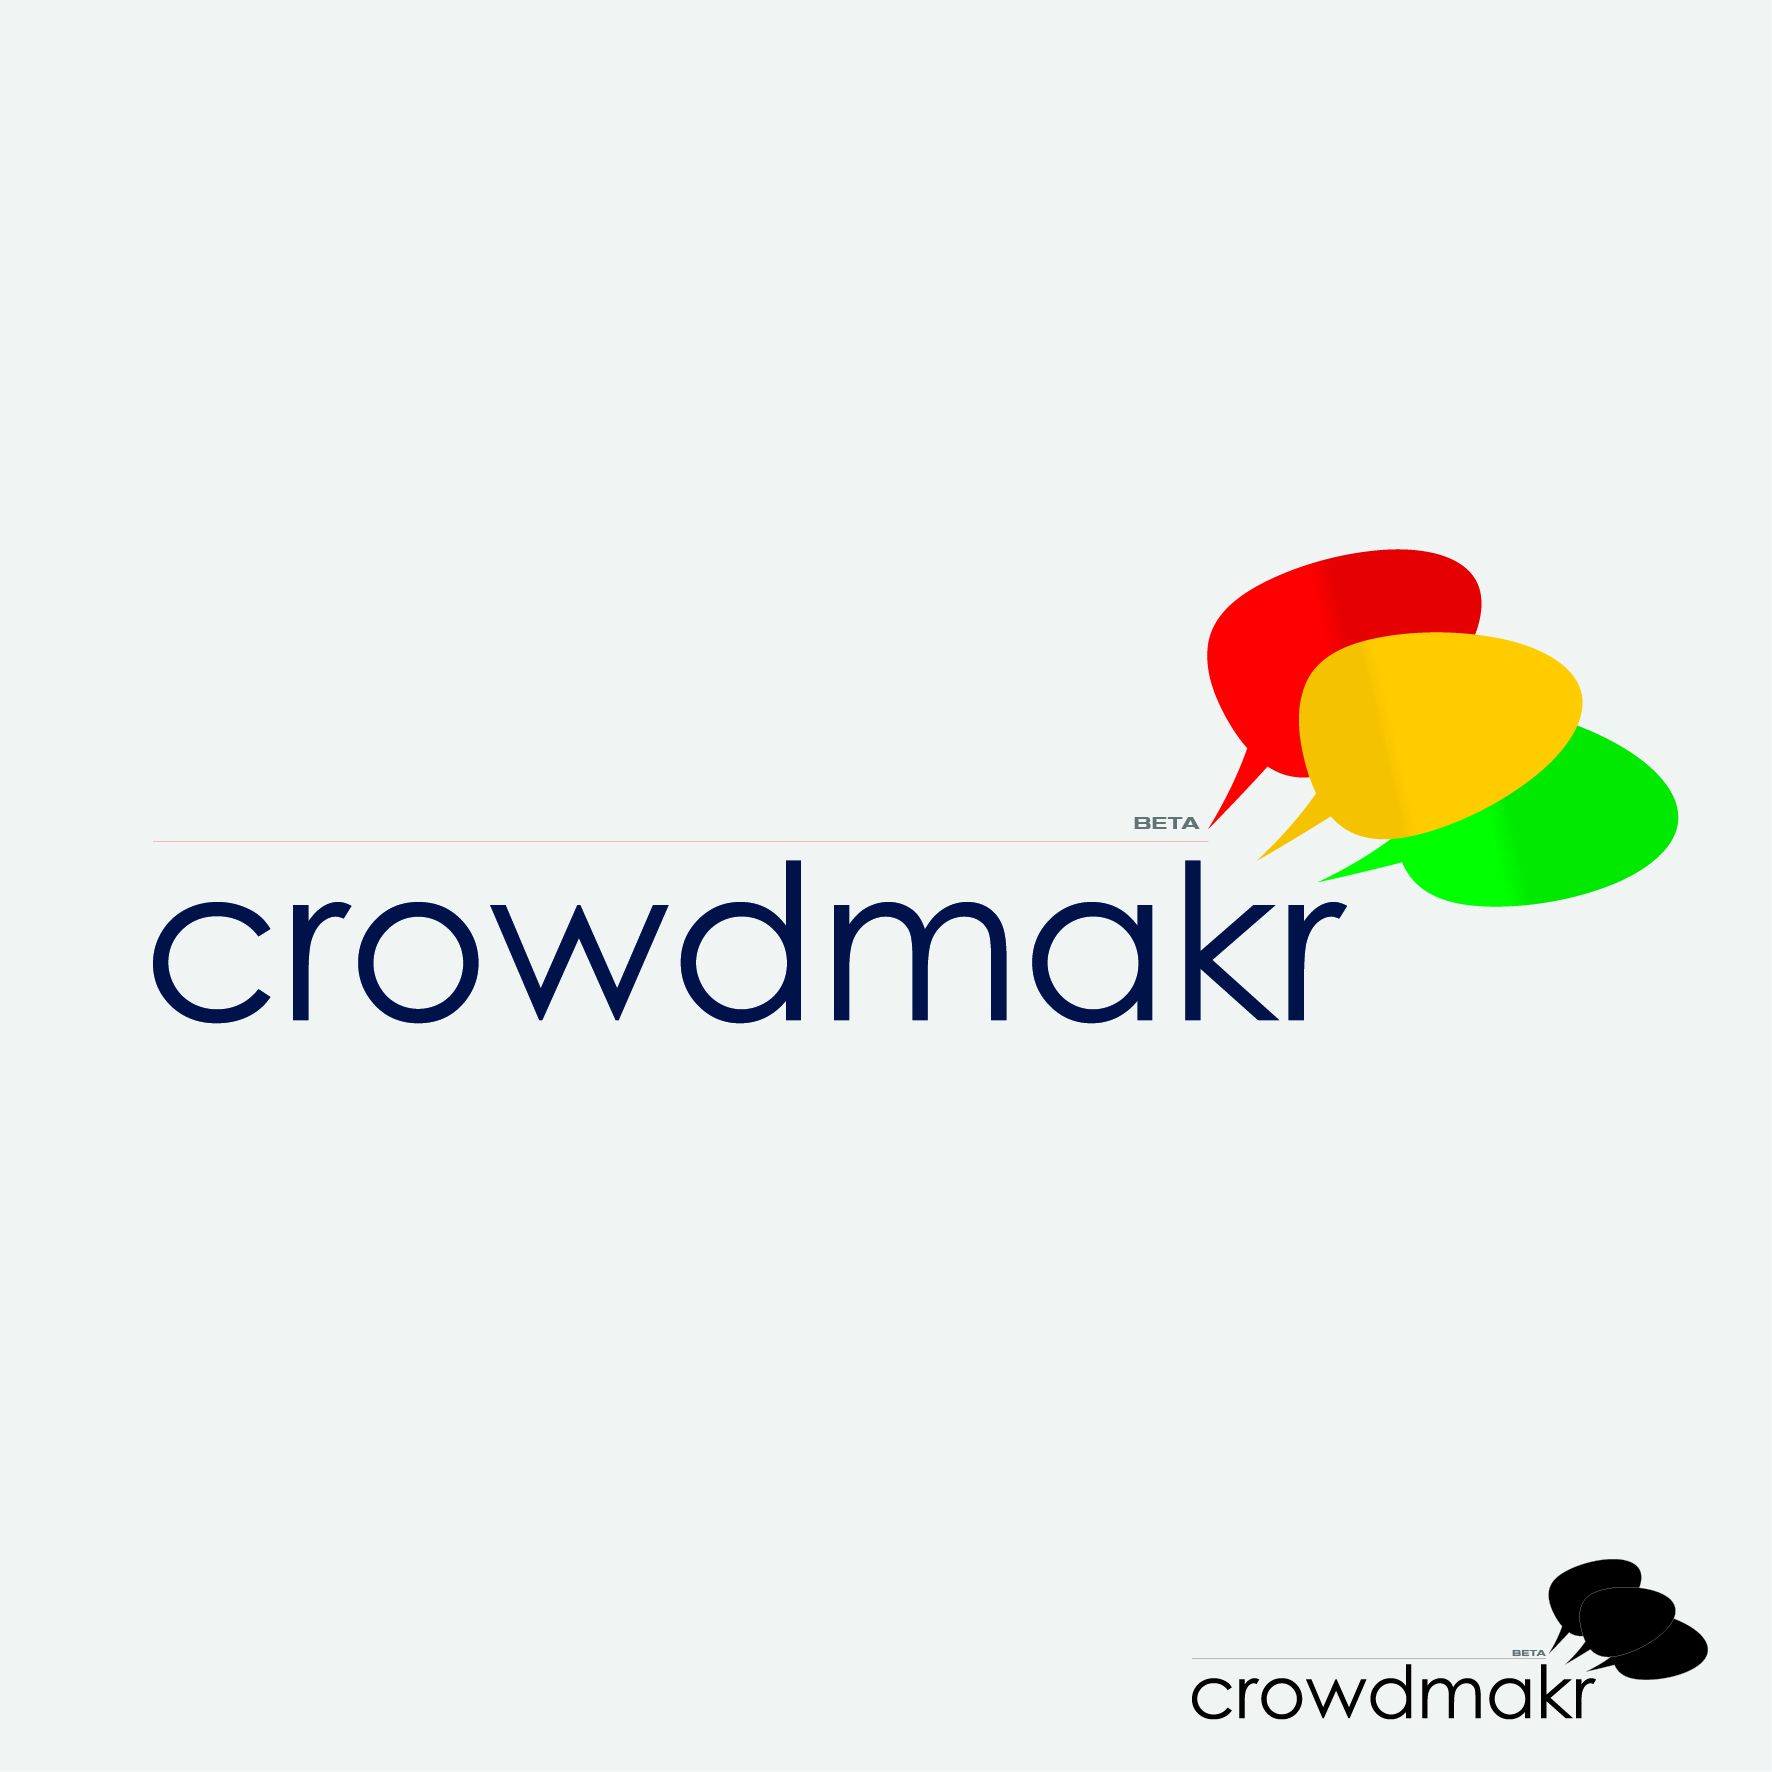 Logo Design by nTia - Entry No. 26 in the Logo Design Contest Unique Logo Design Wanted for crowdmakr.